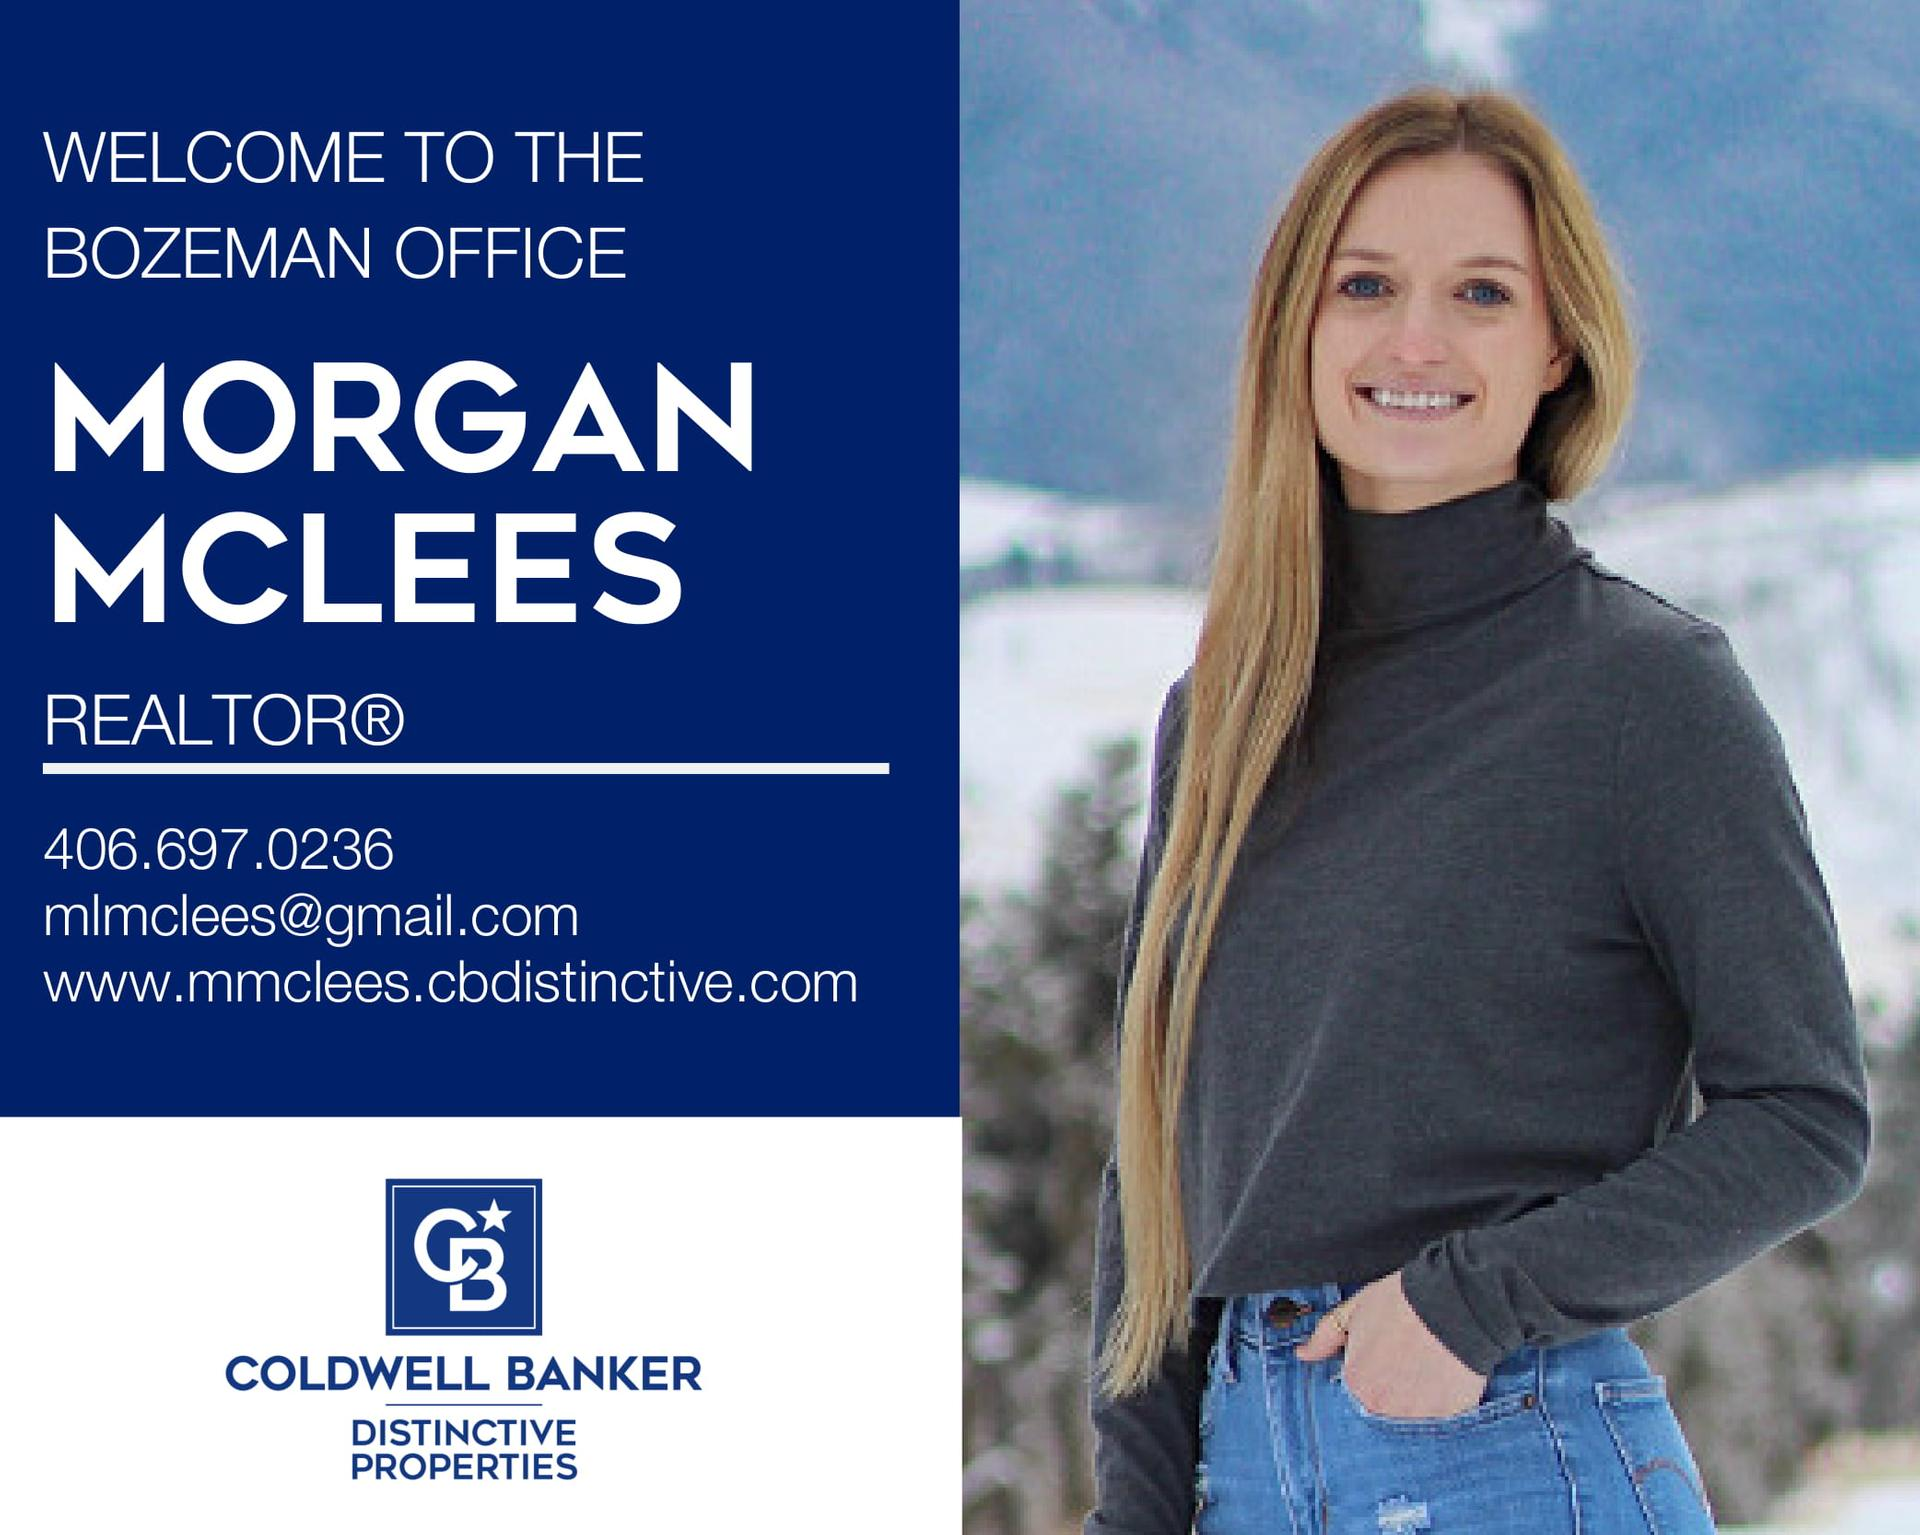 Please help us welcome Morgan McLees to Coldwell Banker Distinctive Properties - Bozeman! Main Photo